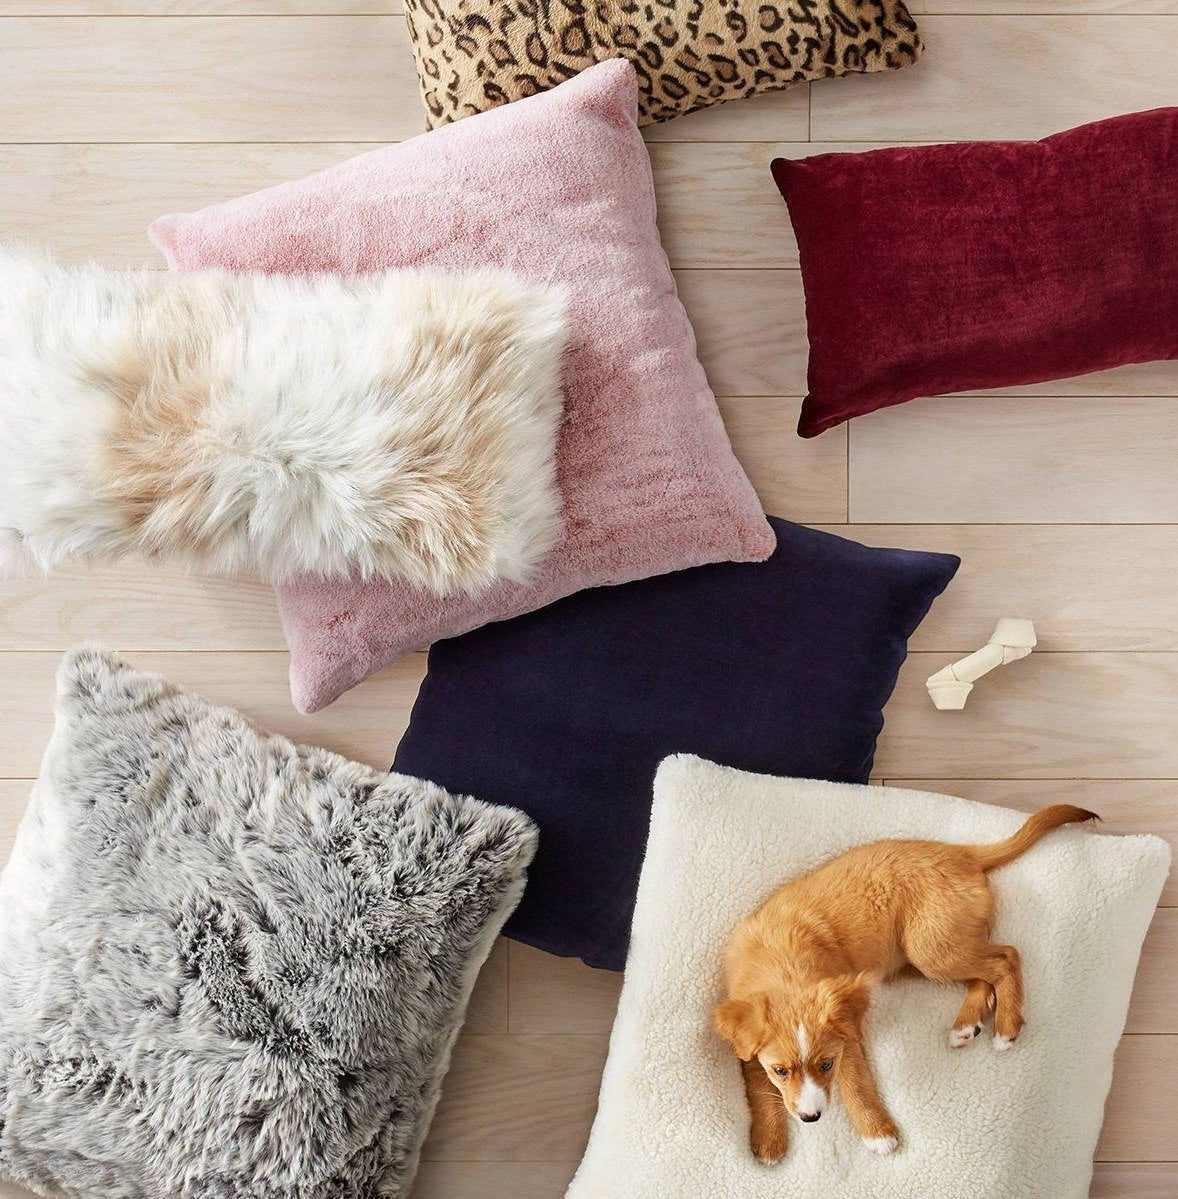 A pile of faux fur throw pillows on the ground with a dog